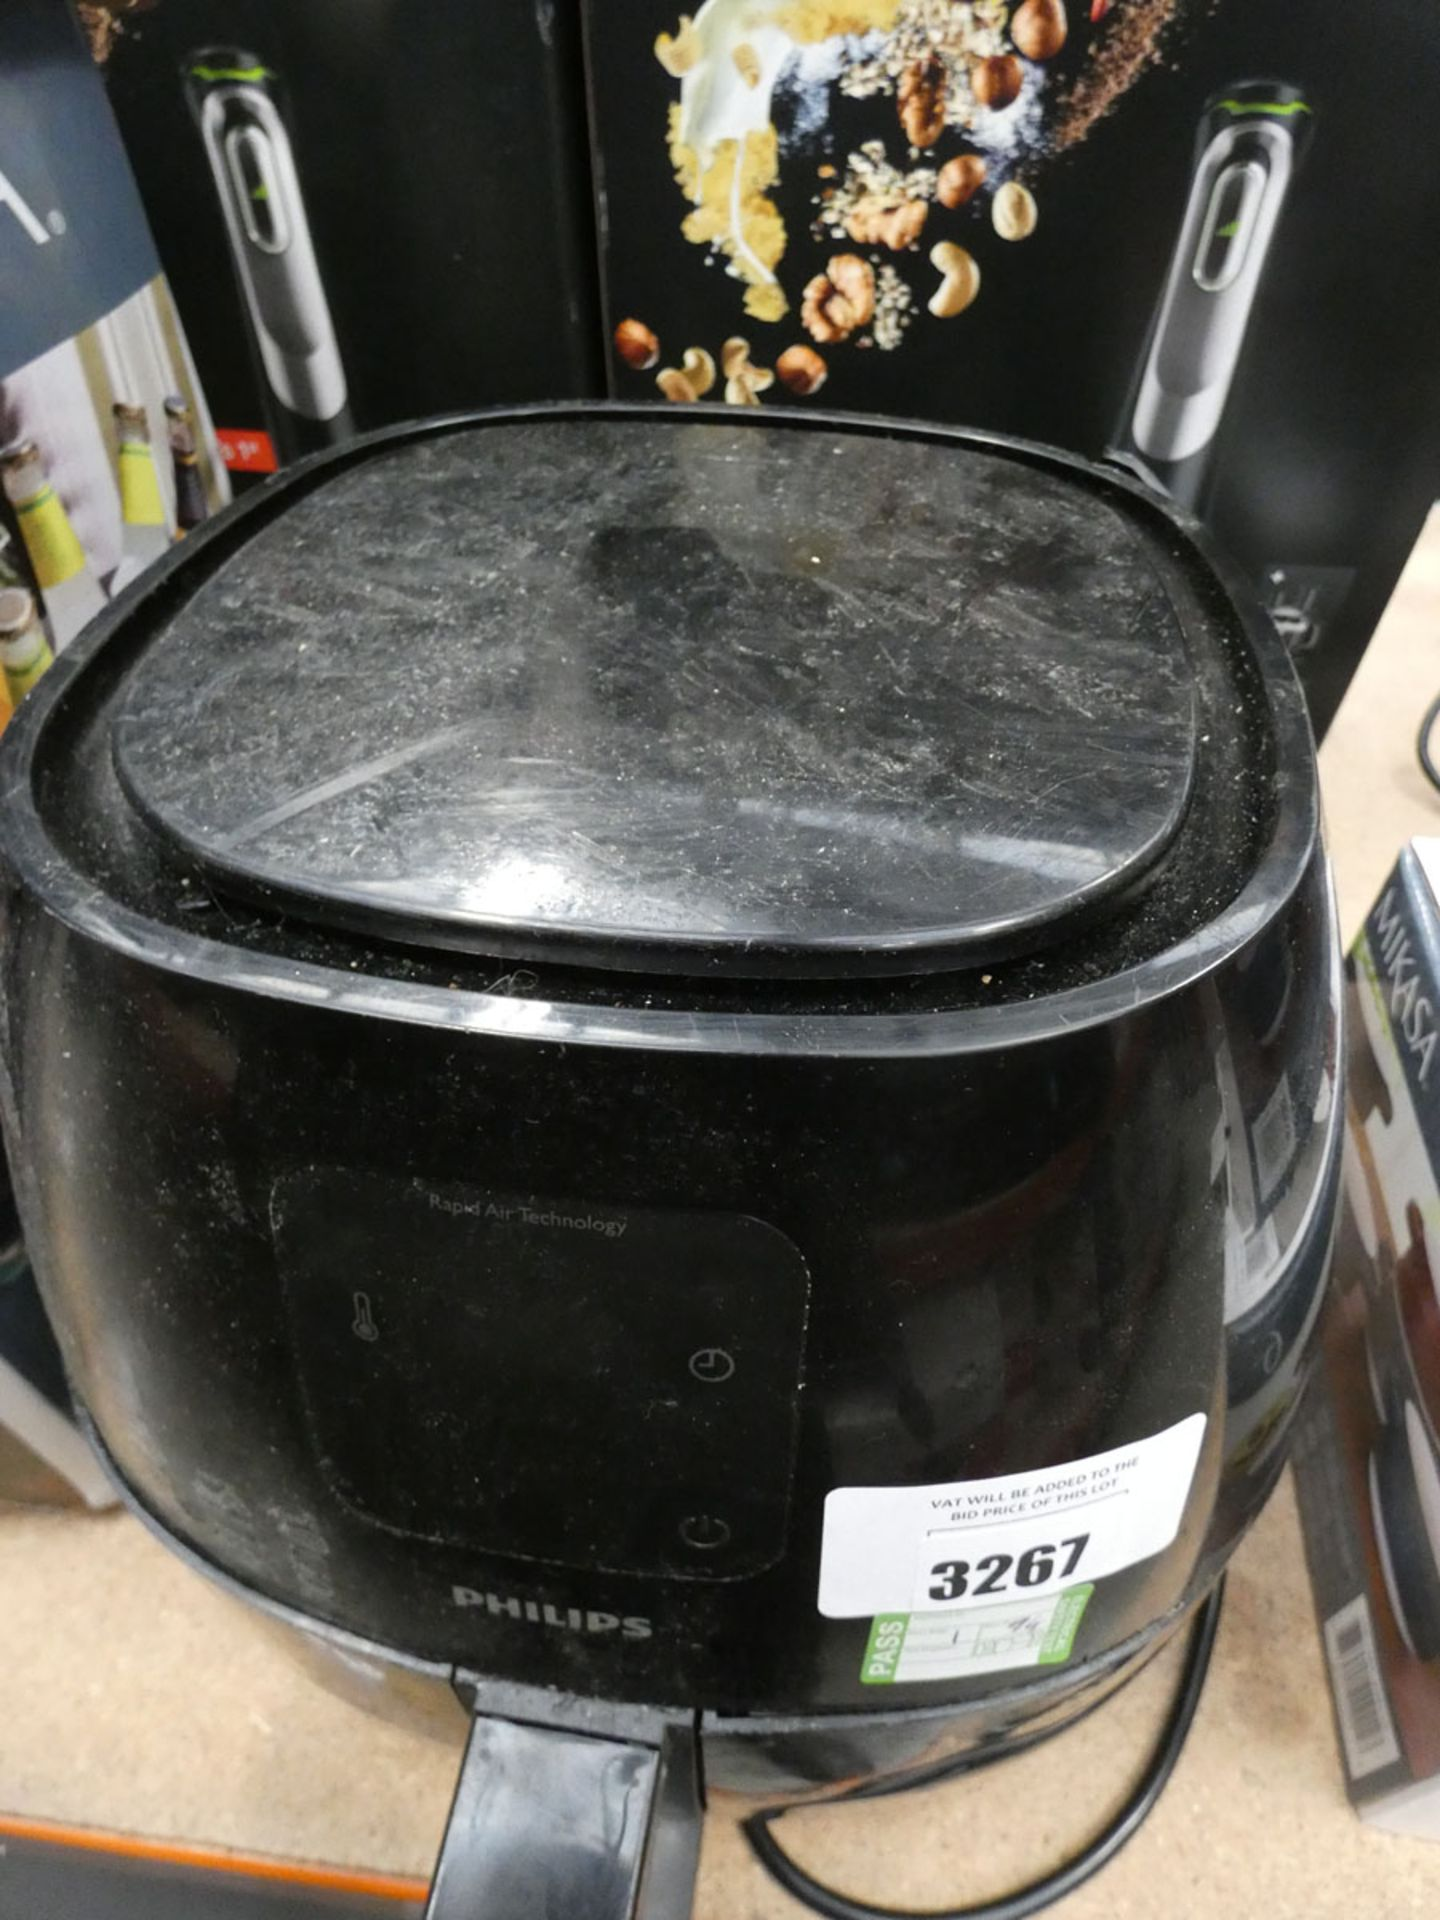 (TN94) Rapid Air Technology Philips fryer - Image 2 of 2